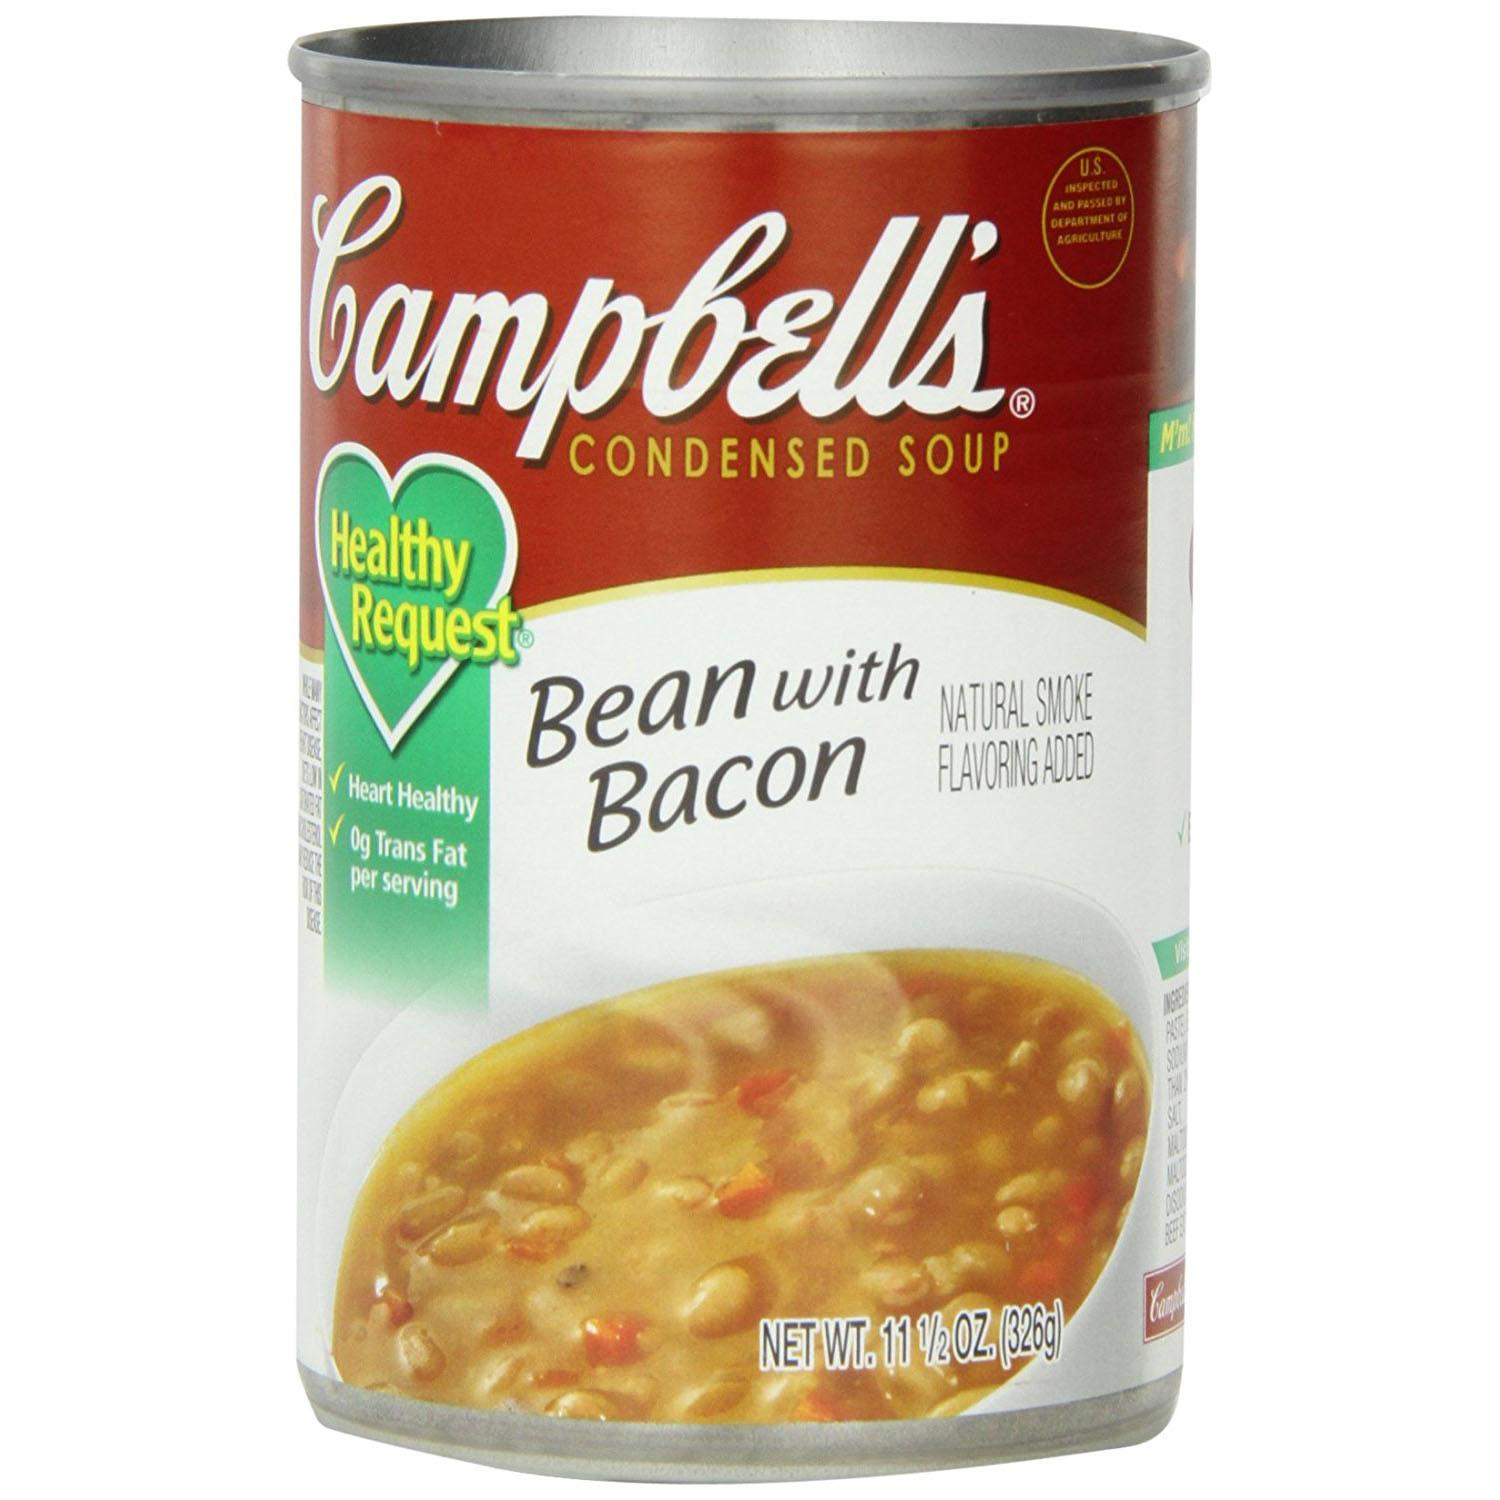 12 Cambell Healthy Request Condensed Soup